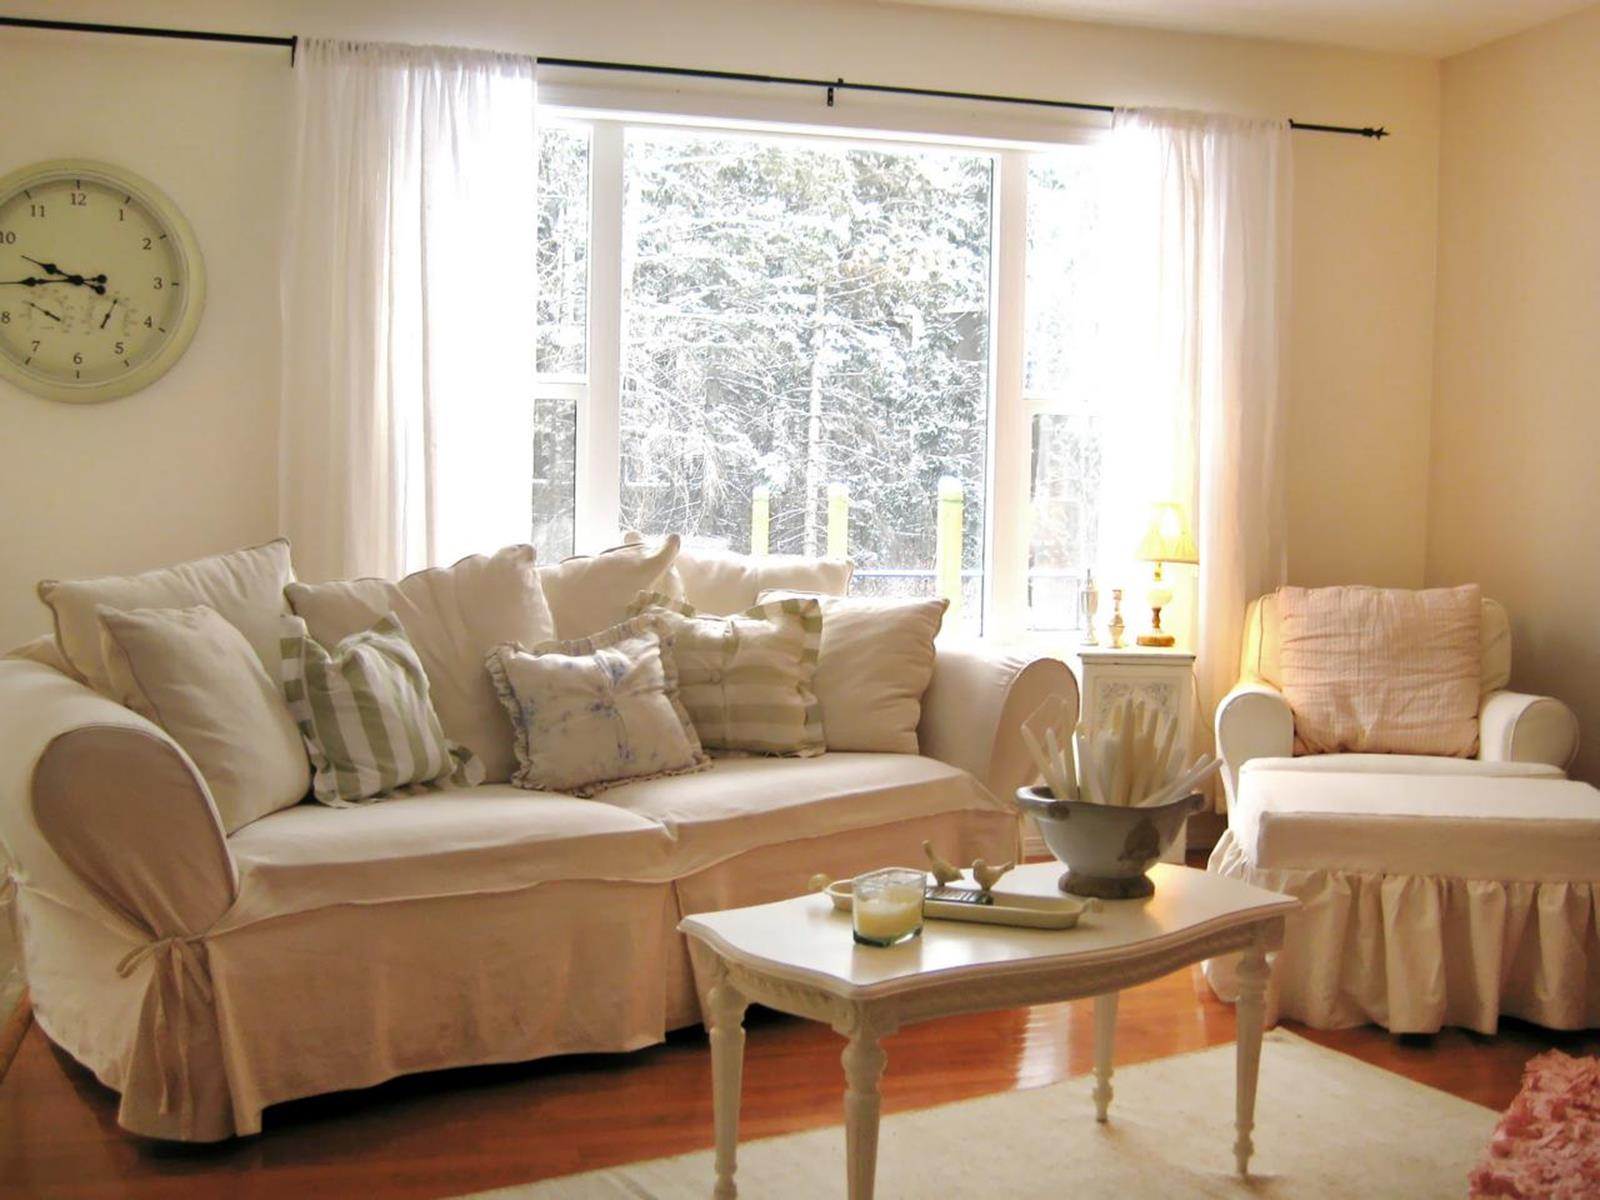 Shabby Chic Living Room Decorating on A Budget 39